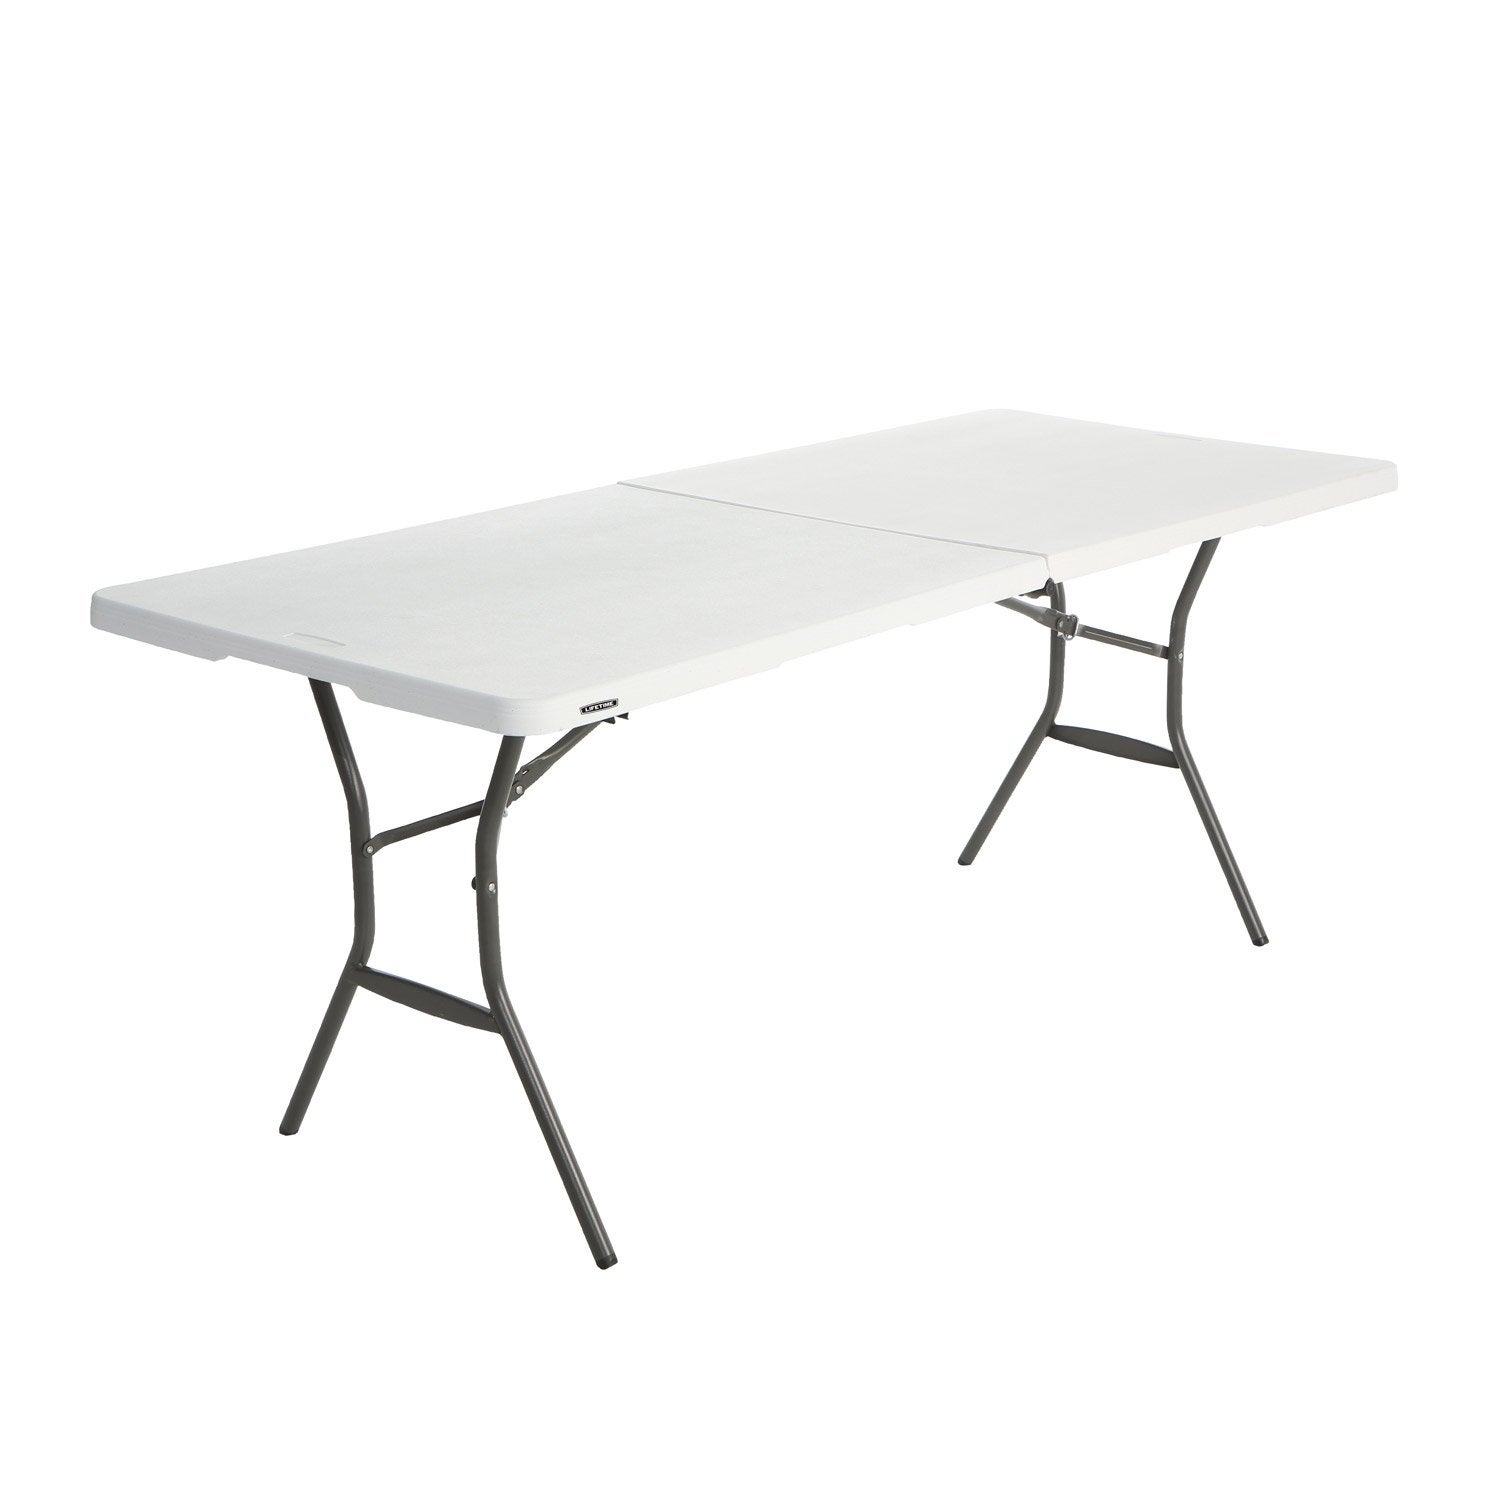 Table De Jardin De Repas Lifetime Rectangulaire Blanc 6 Personnes No Name Table De Jardin Table Pliante Et Table